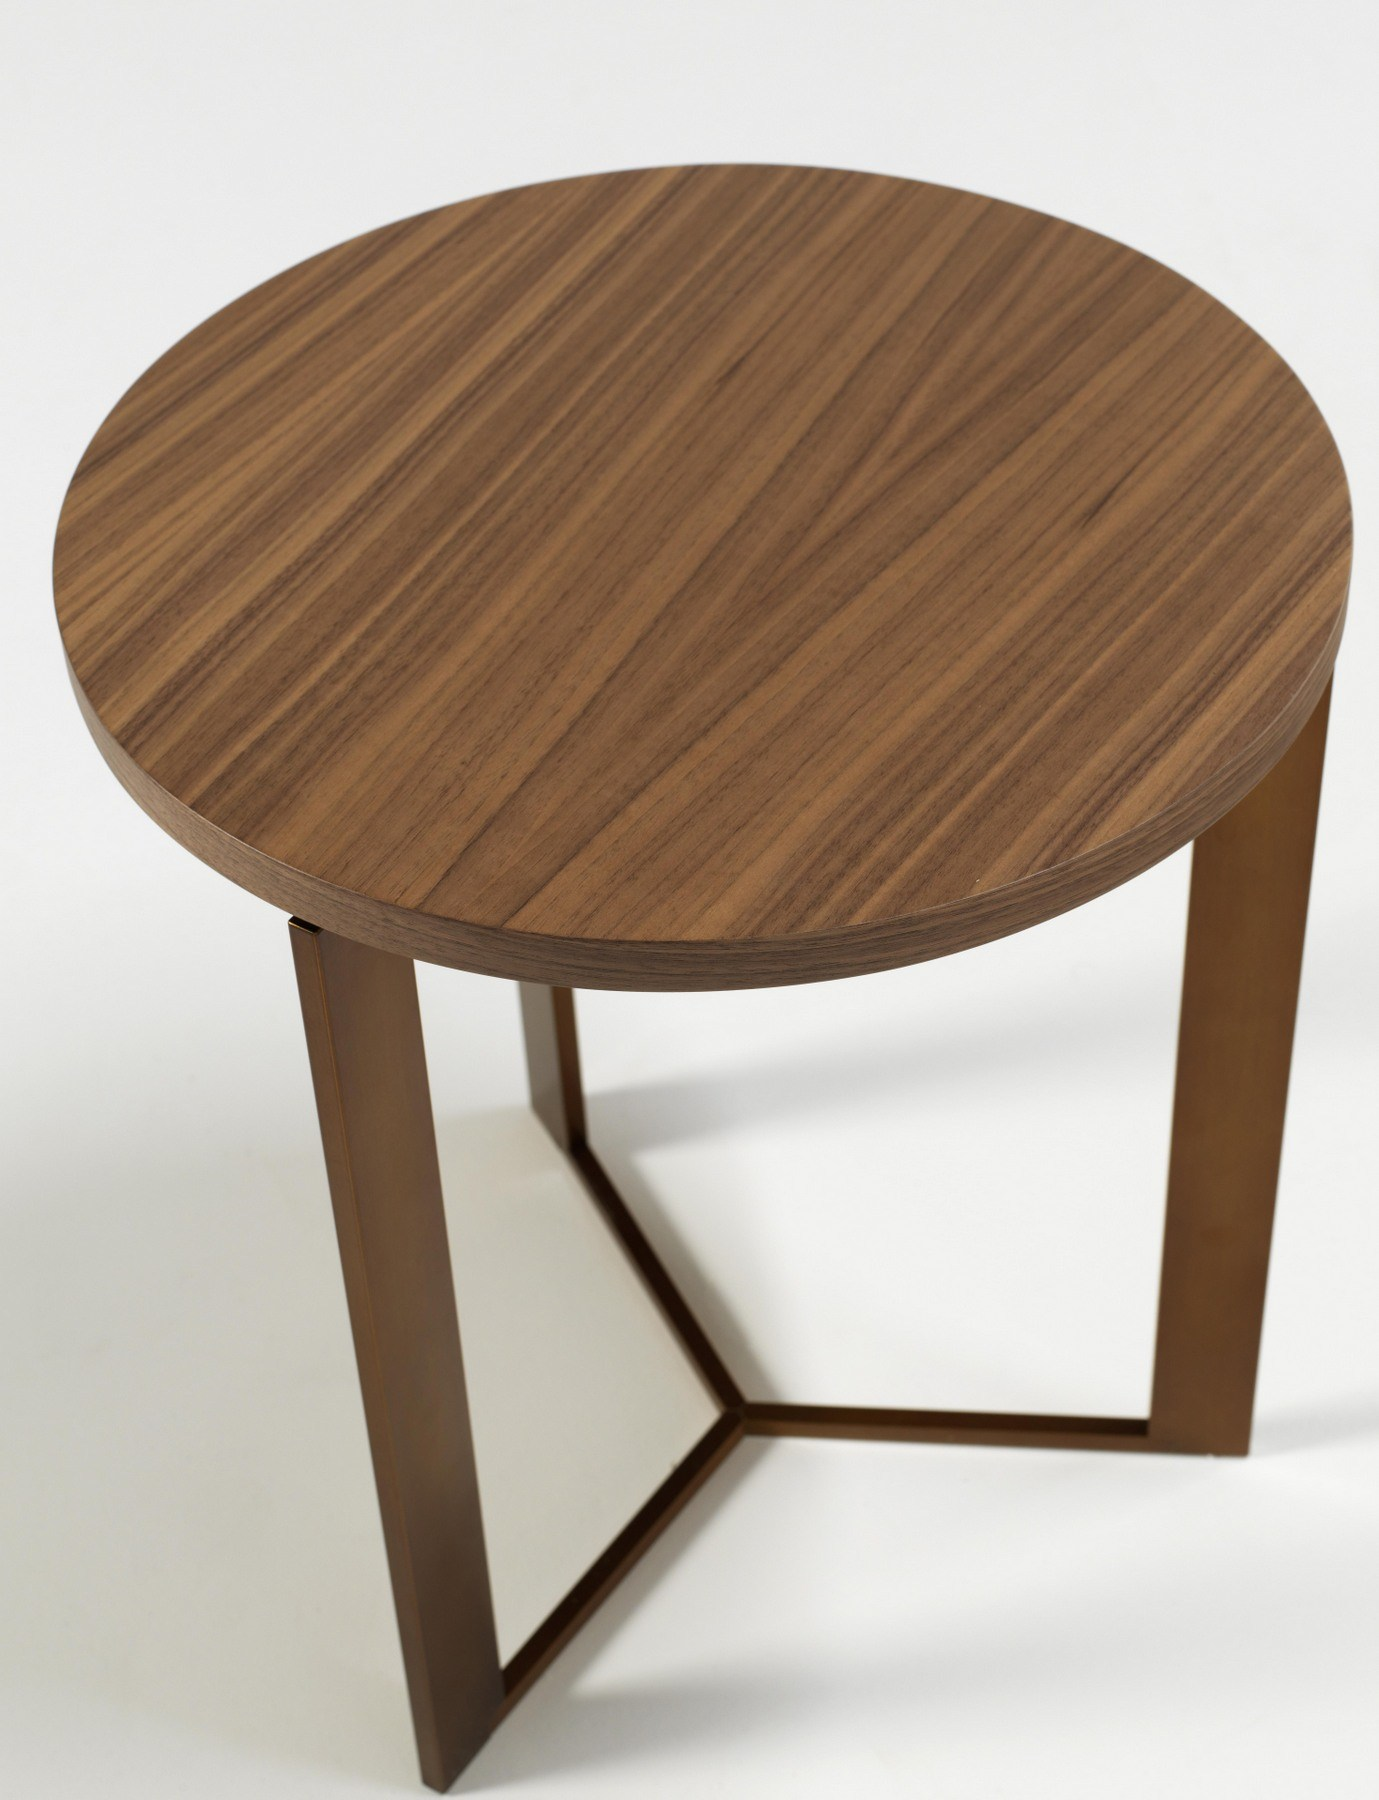 Gong walnut coffee table by amura for Prem table 99 00